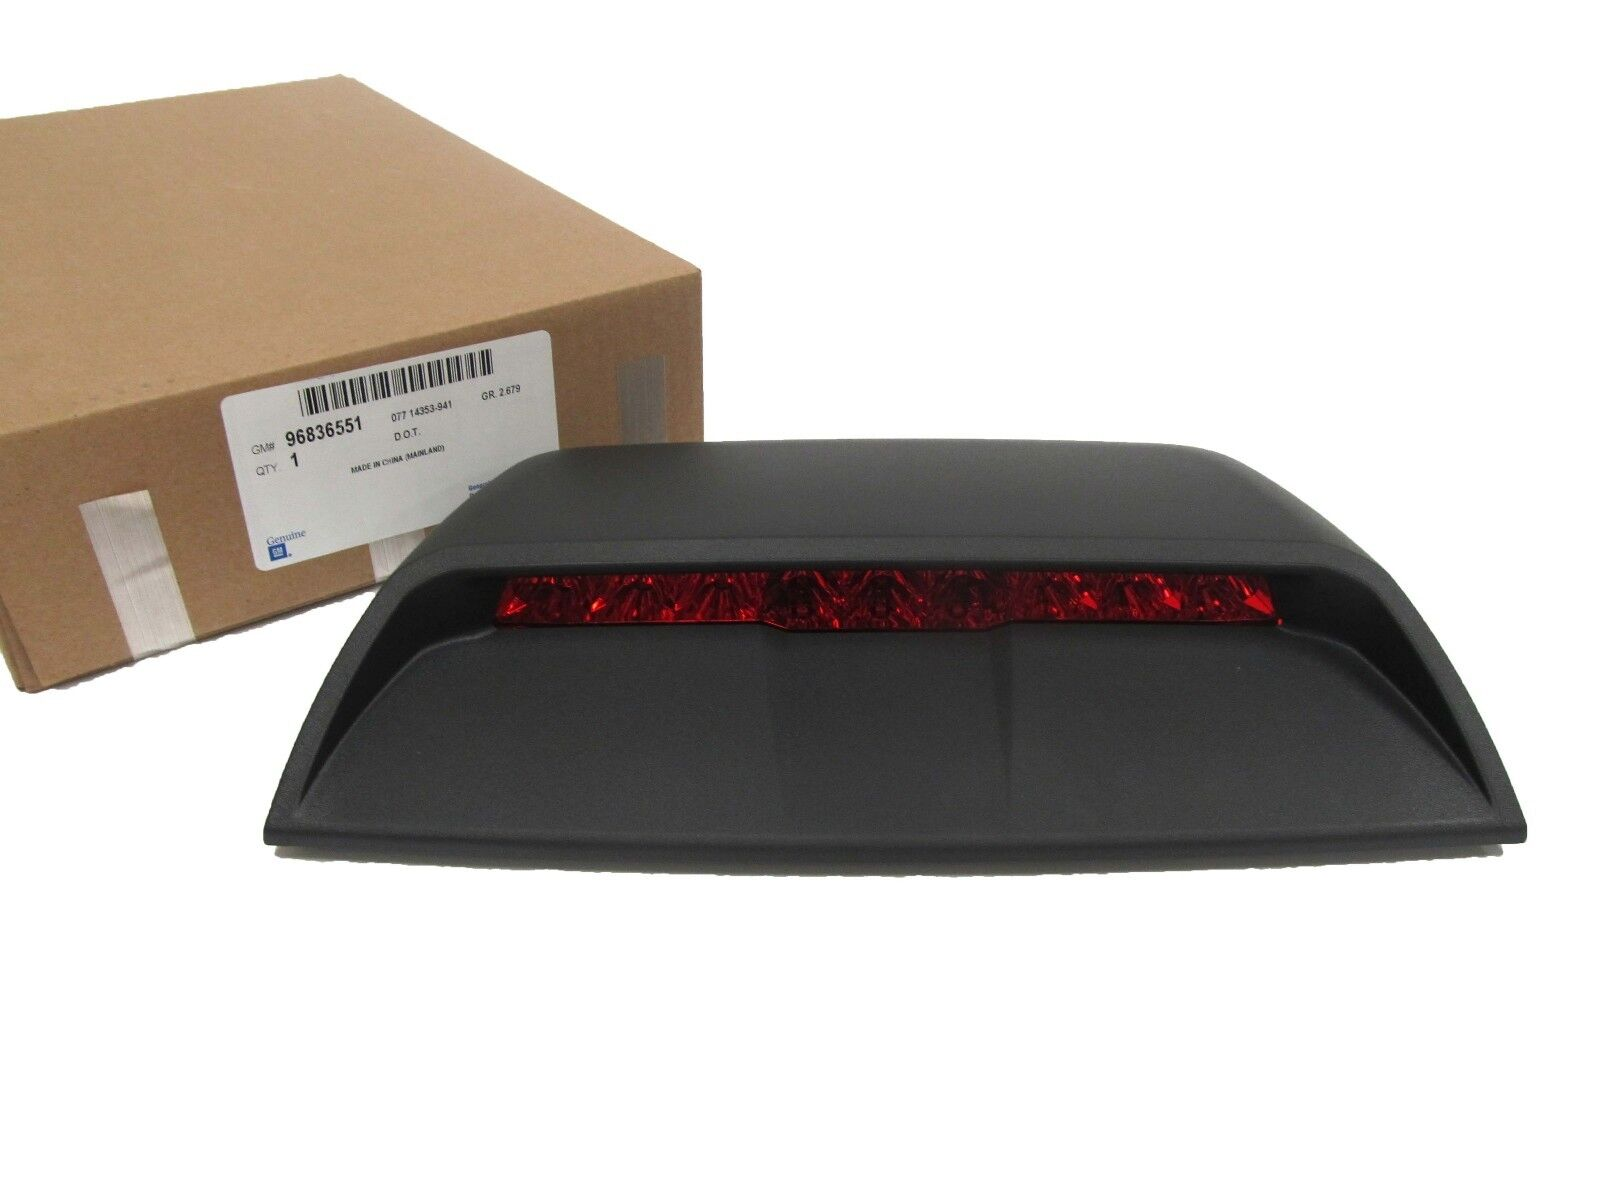 Oem New Rear High Mount Brake Light Lamp Black 11 15 Chevrolet Cruze Wiring Diagram 1 Of 5only 2 Available